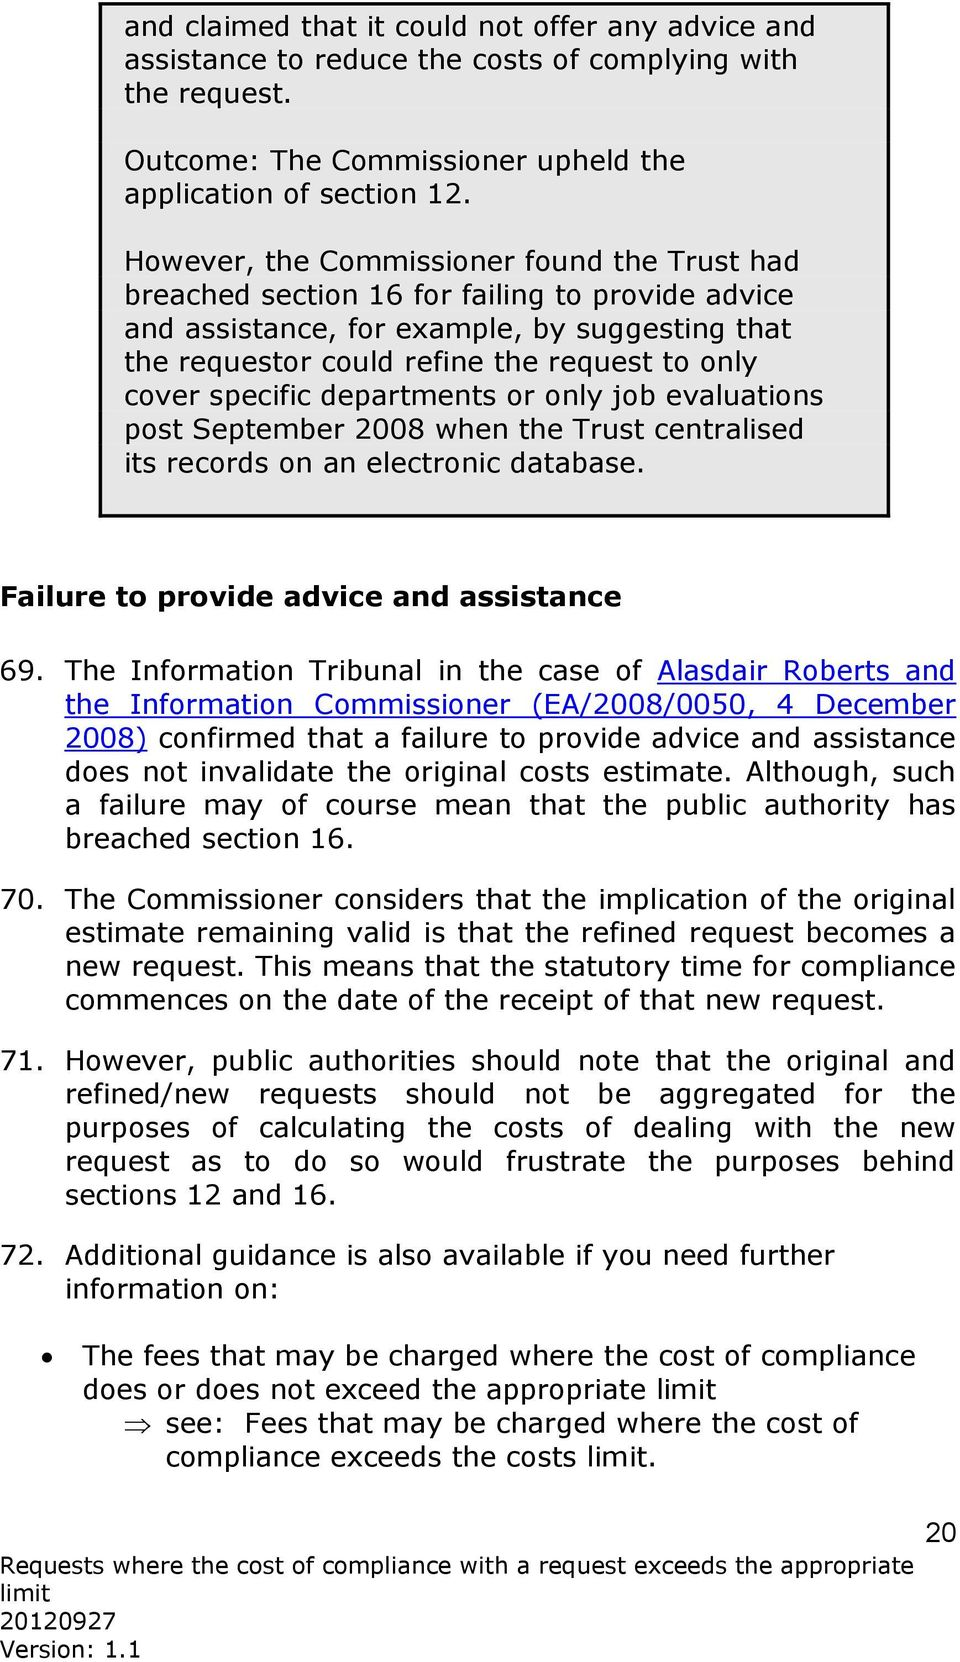 specific departments or only job evaluations post September 2008 when the Trust centralised its records on an electronic database. Failure to provide advice and assistance 69.